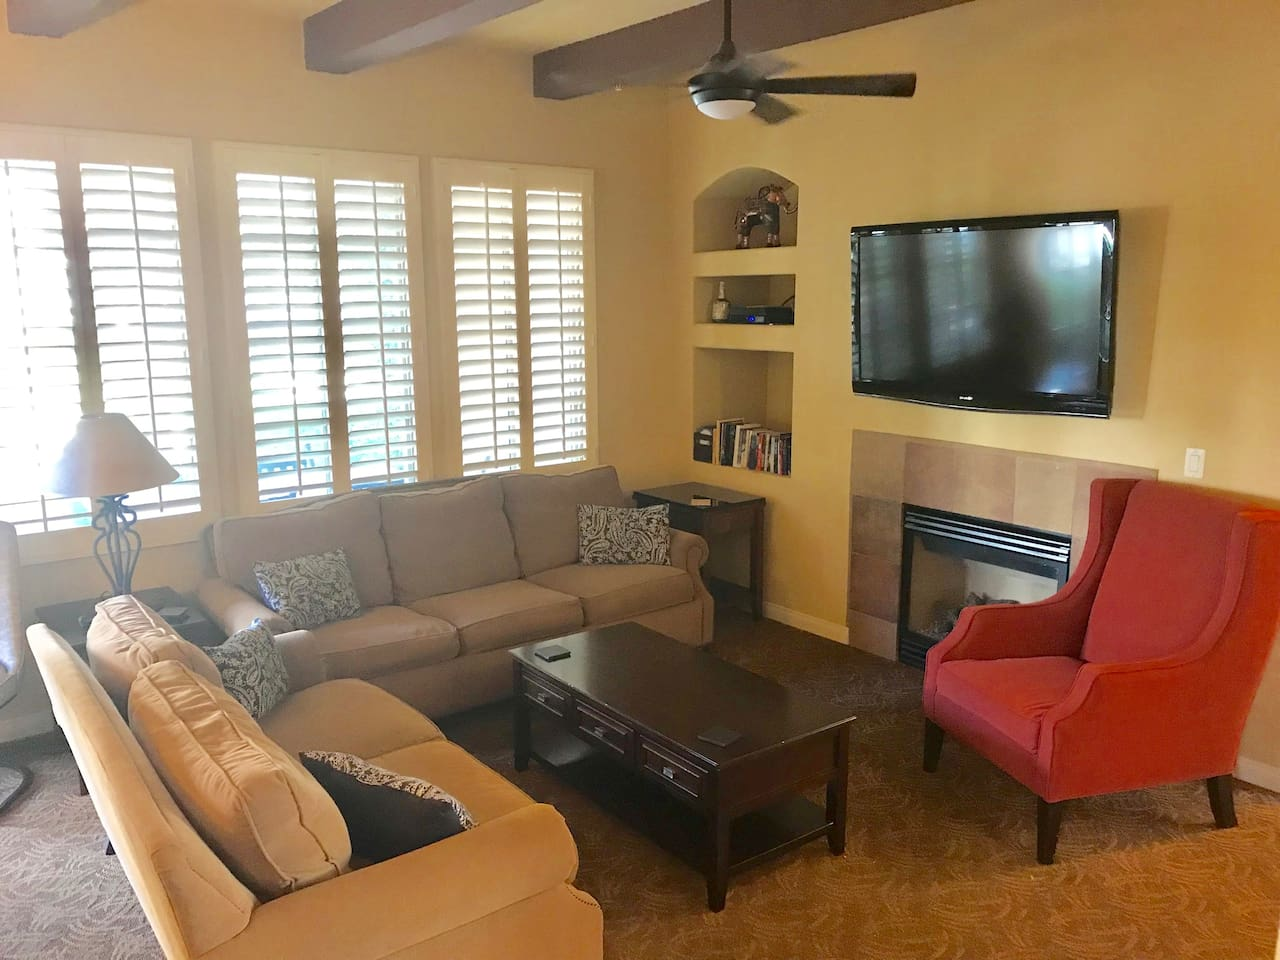 the large living space has a sofa sleeper, love seat and an additional large chair to offer plenty of seating.  A large flat screen with cable, dvd player, and a fireplace.